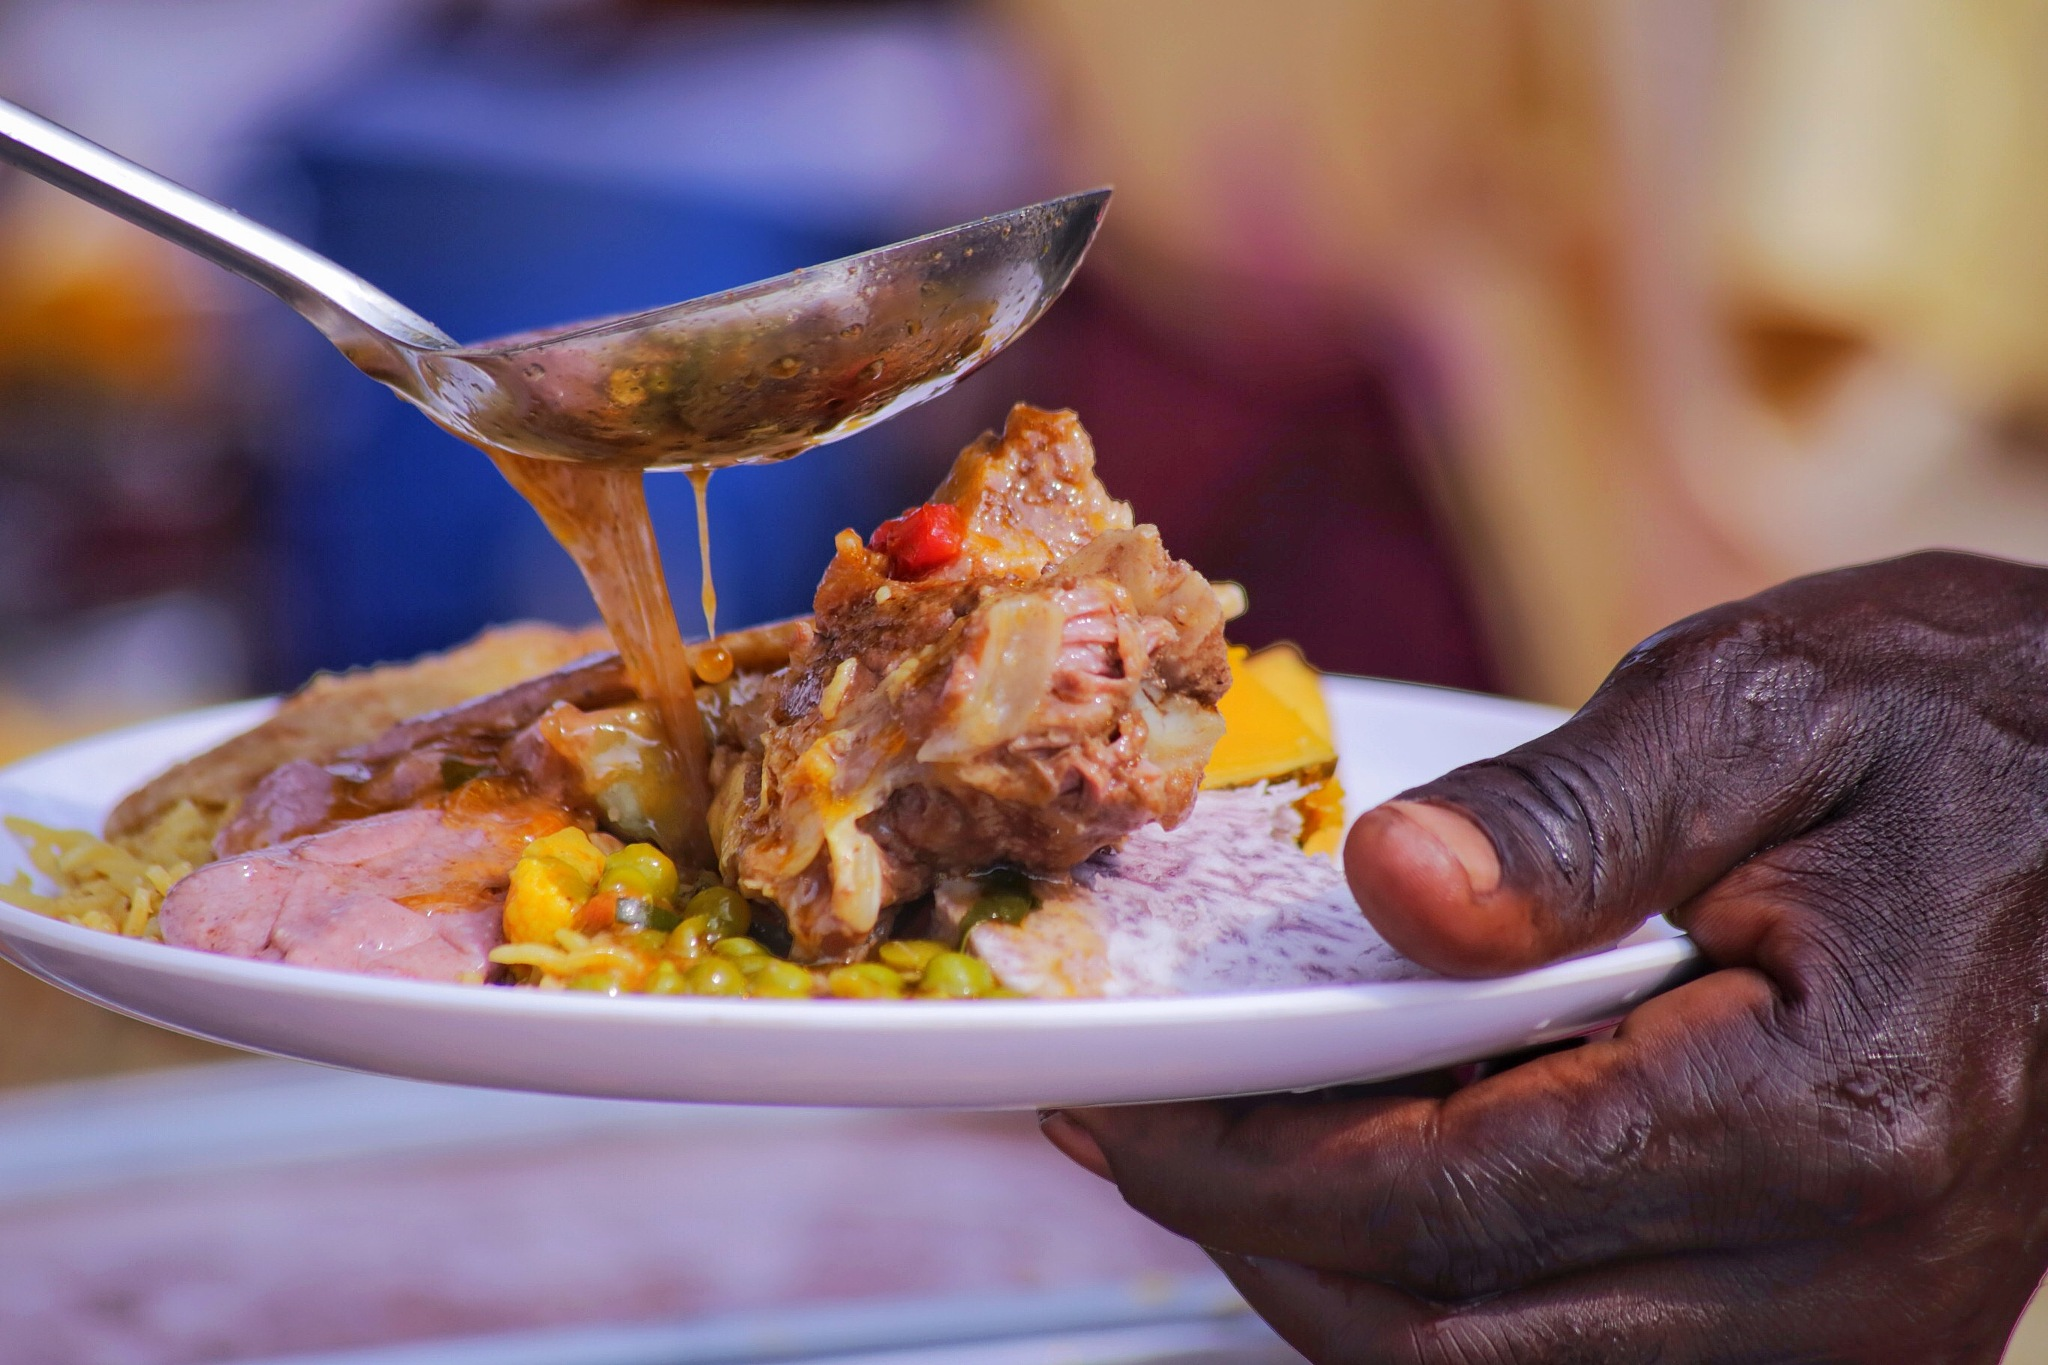 More Soup please  by James Wasswa